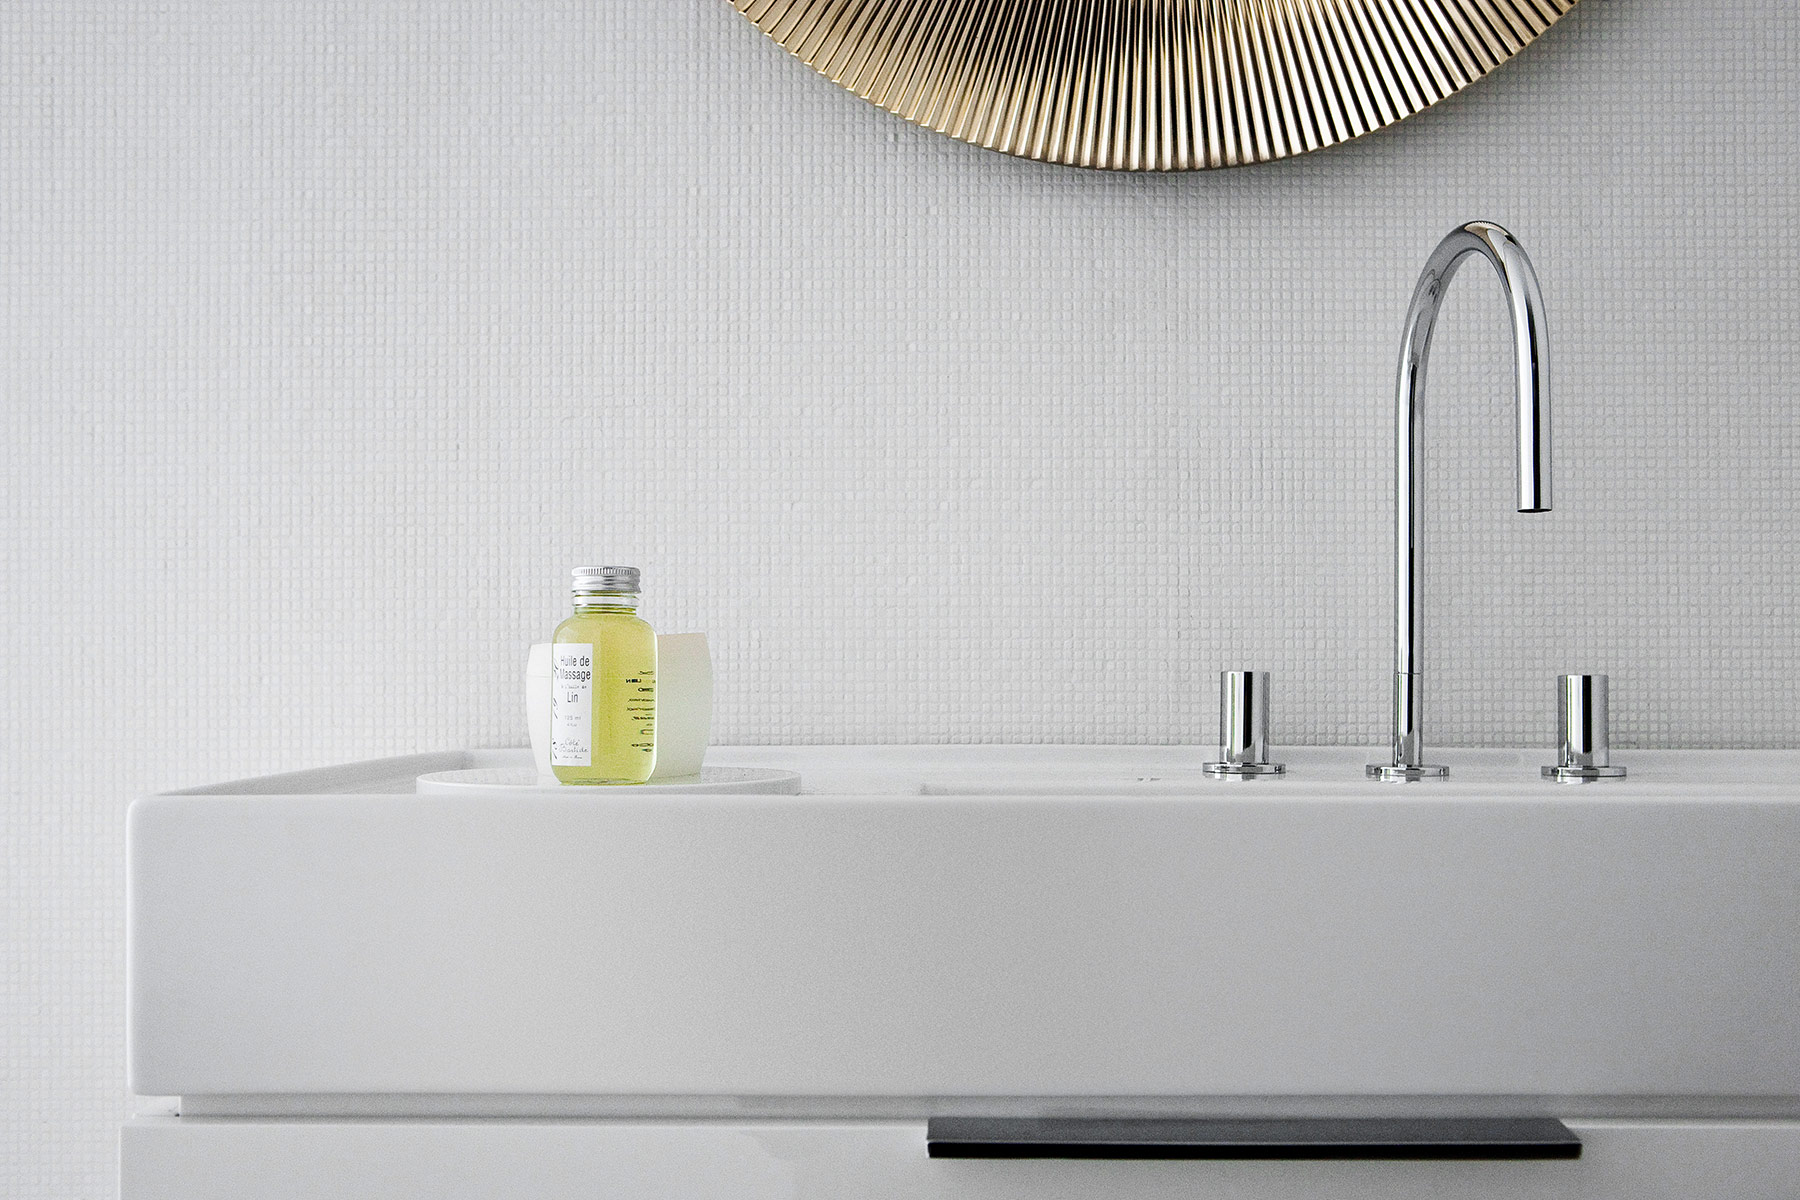 Transitional Kartell Deck Mounted Faucet